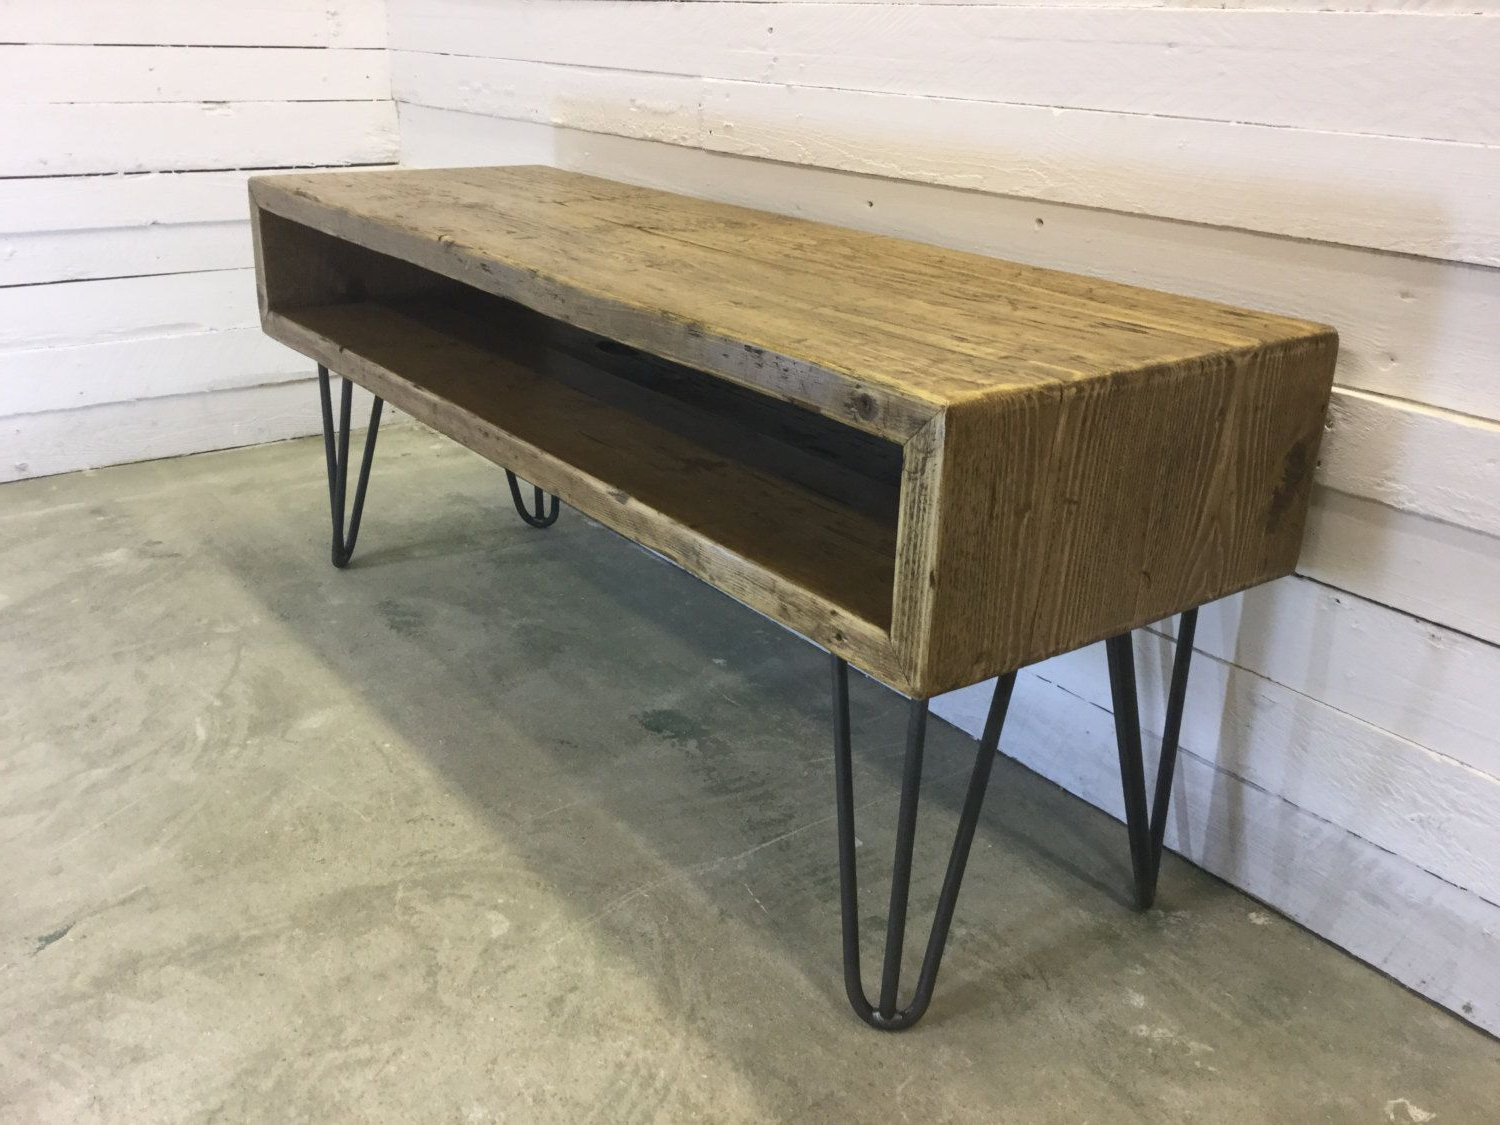 Hairpin Leg Tv Stands Within Most Up To Date Createdoxrusticfurniture 'rustic Industrial Hairpin Leg Scaffold (View 14 of 20)